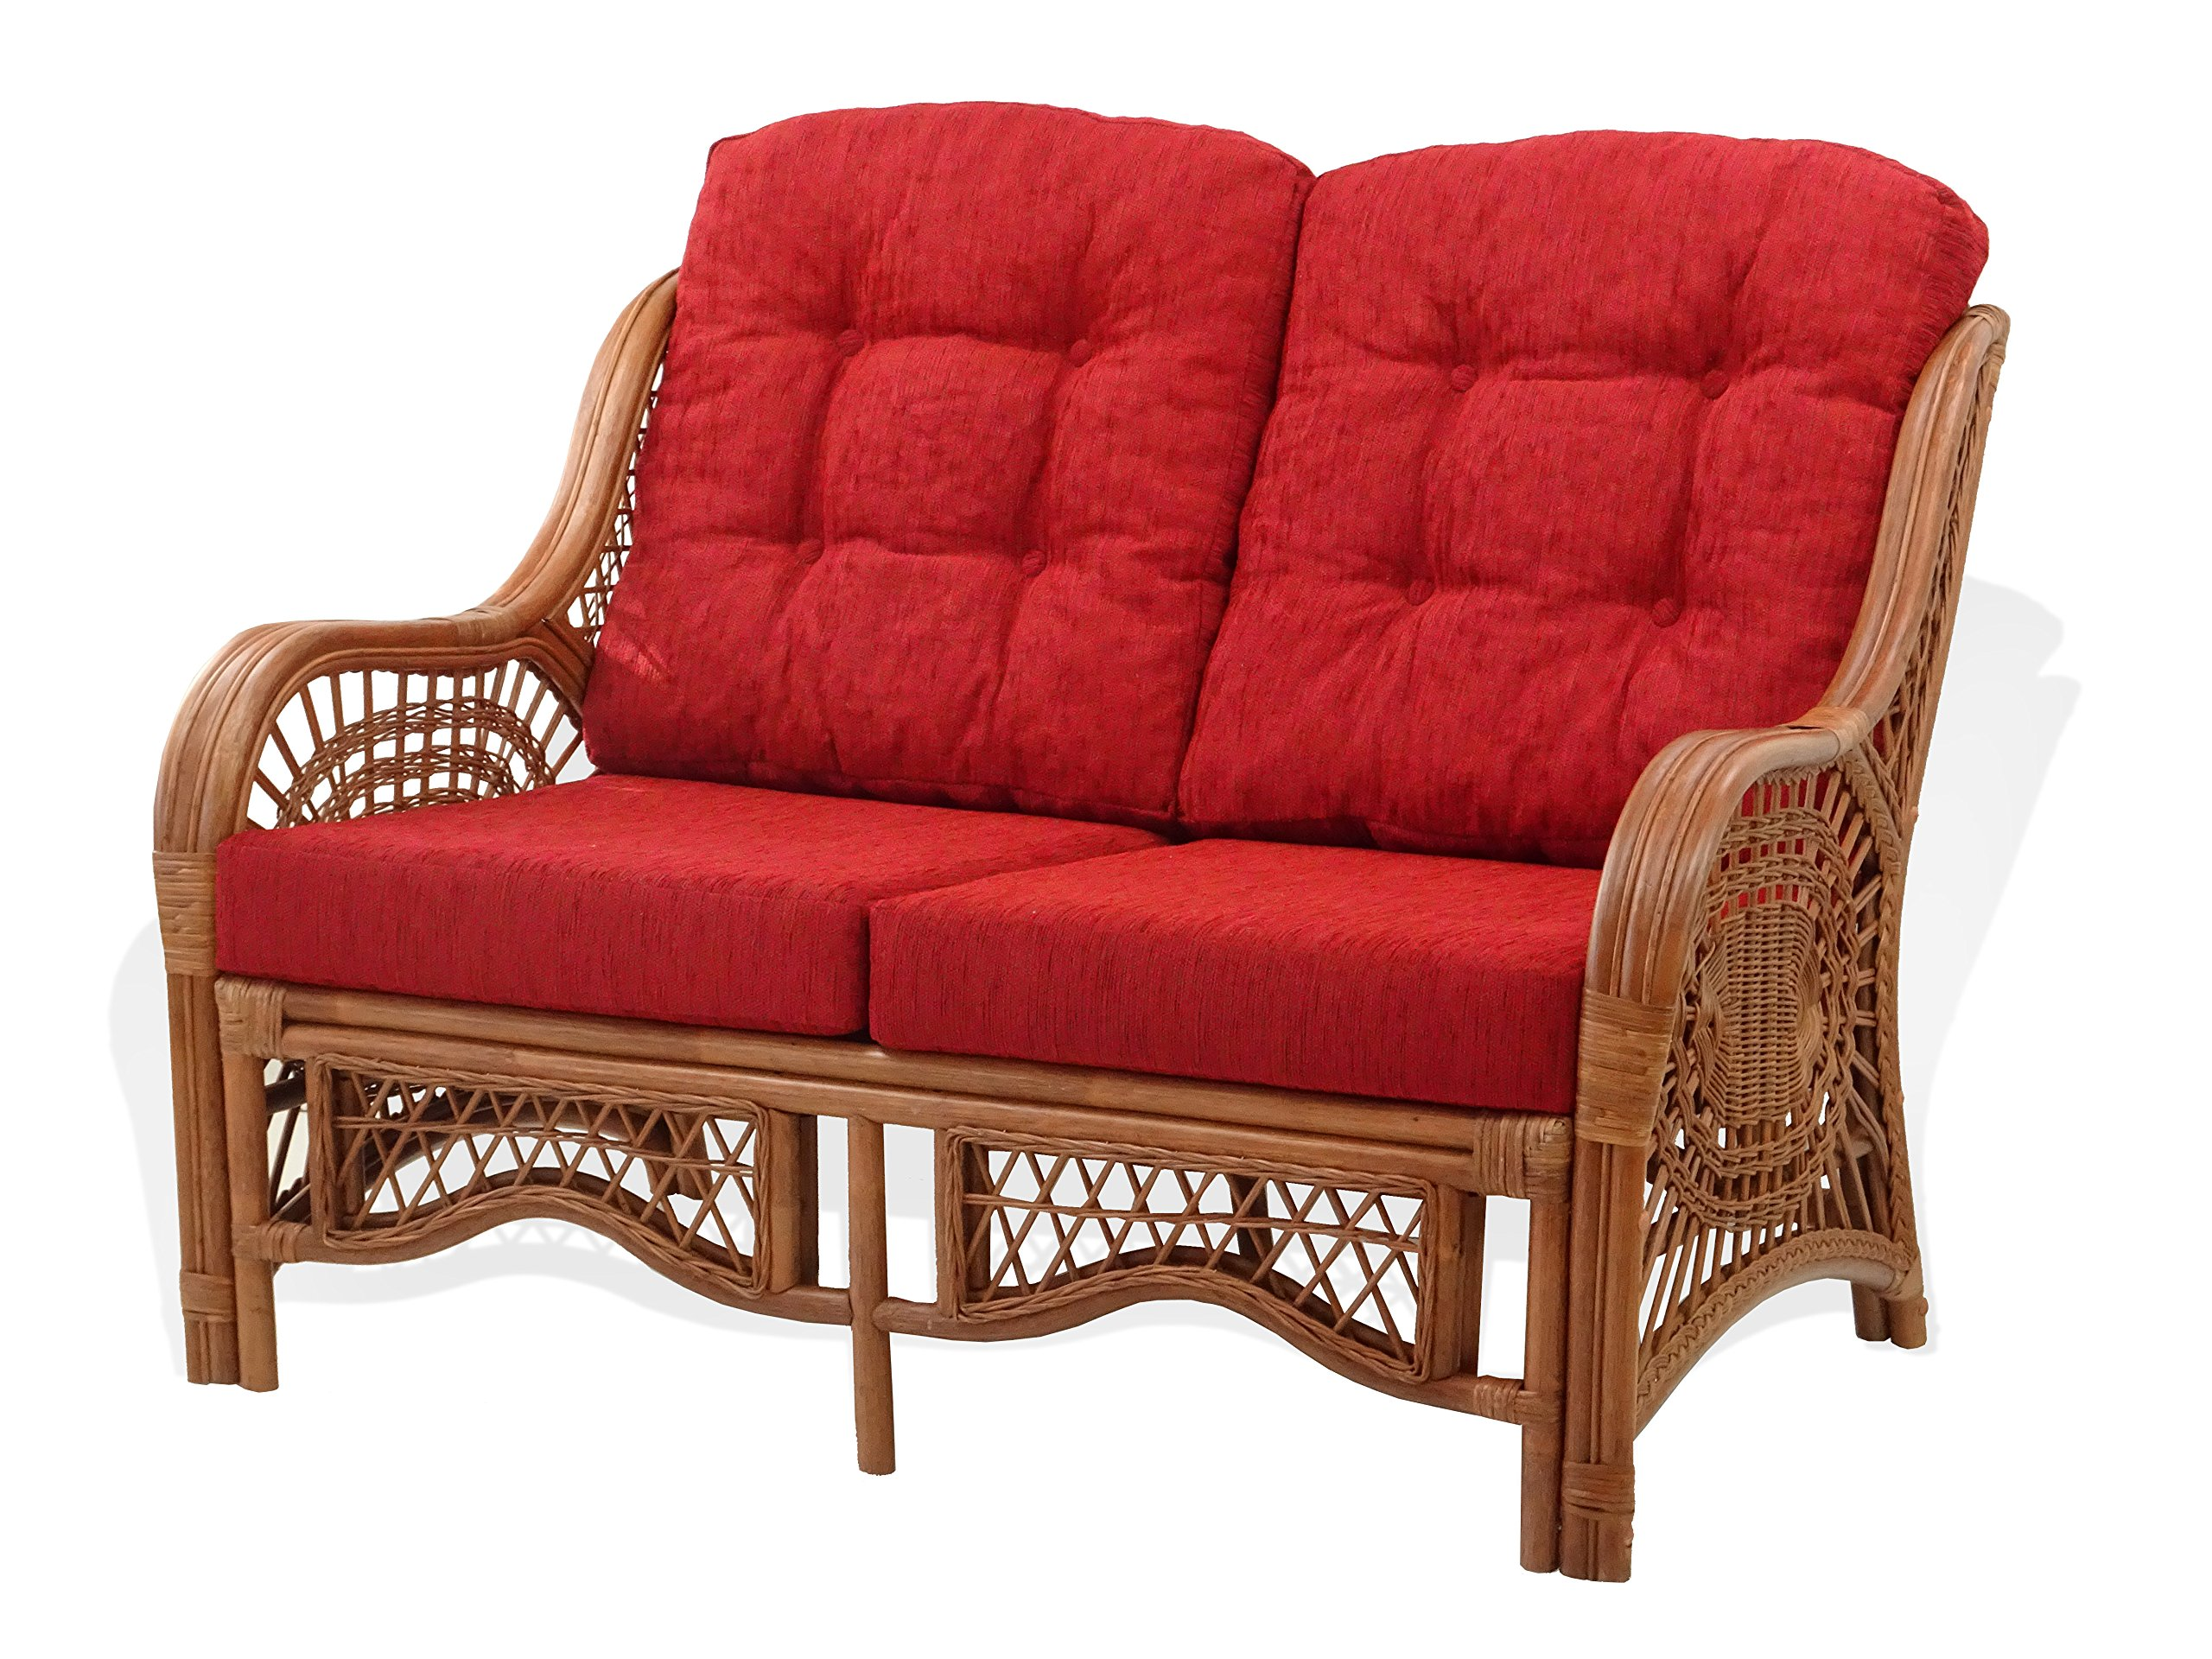 Malibu Lounge Loveseat Sofa Natural Rattan Wicker Handmade Design with Red Cushions, Colonial - ~Natural Rattan (Wicker) ~Color: Colonial ~Very easy to assemble - sofas-couches, living-room-furniture, living-room - 91iwxP dBXL -